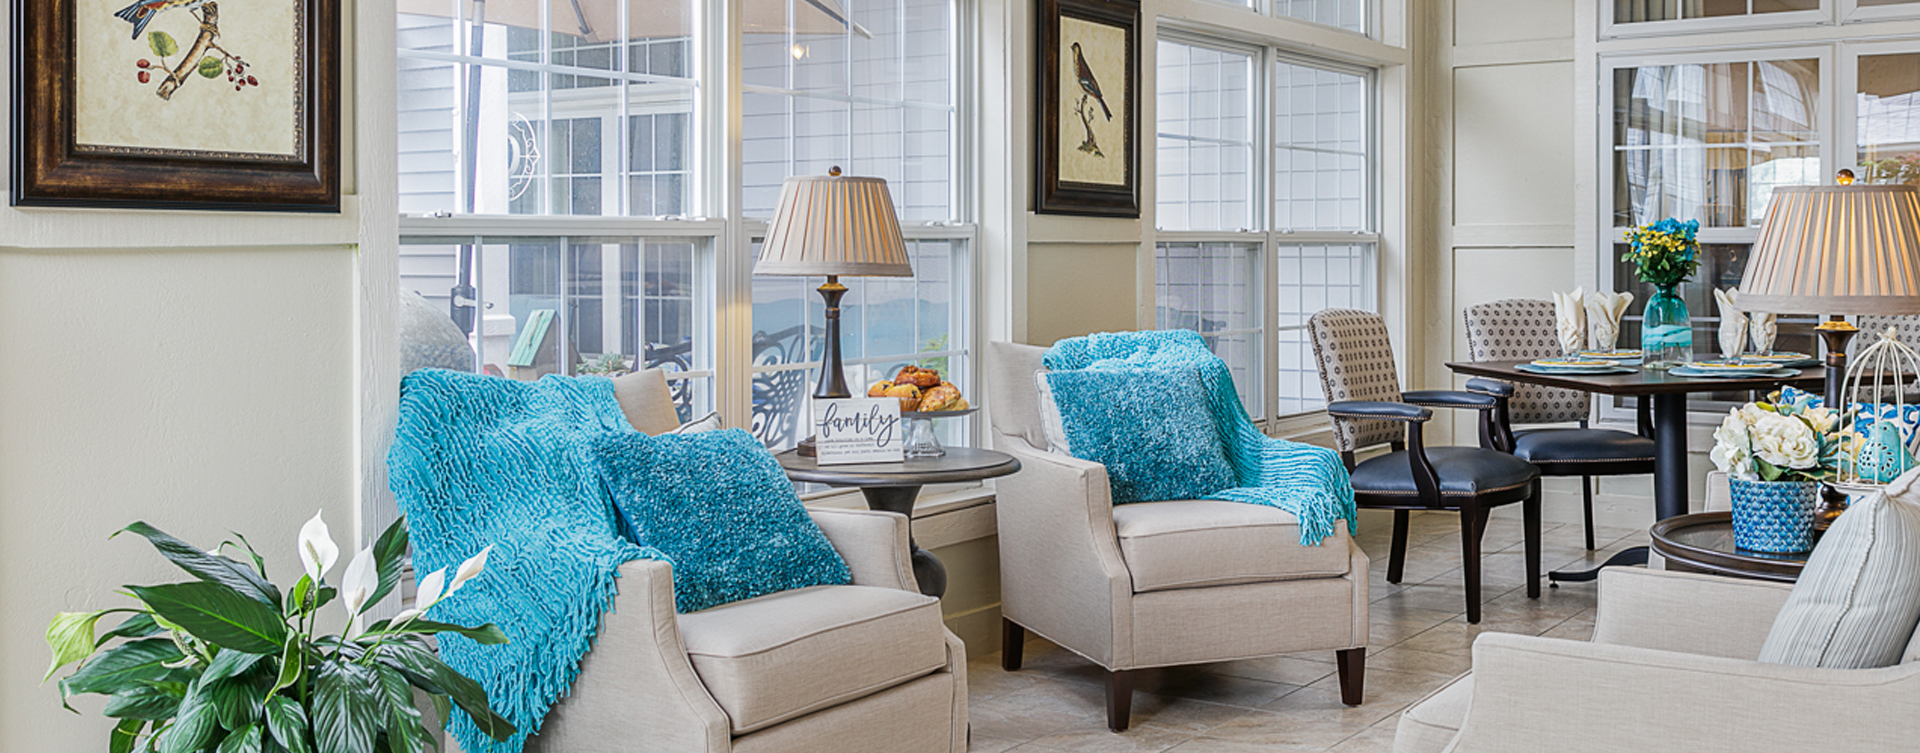 Curl up with a good book in the sunroom at Bickford of Omaha - Blondo